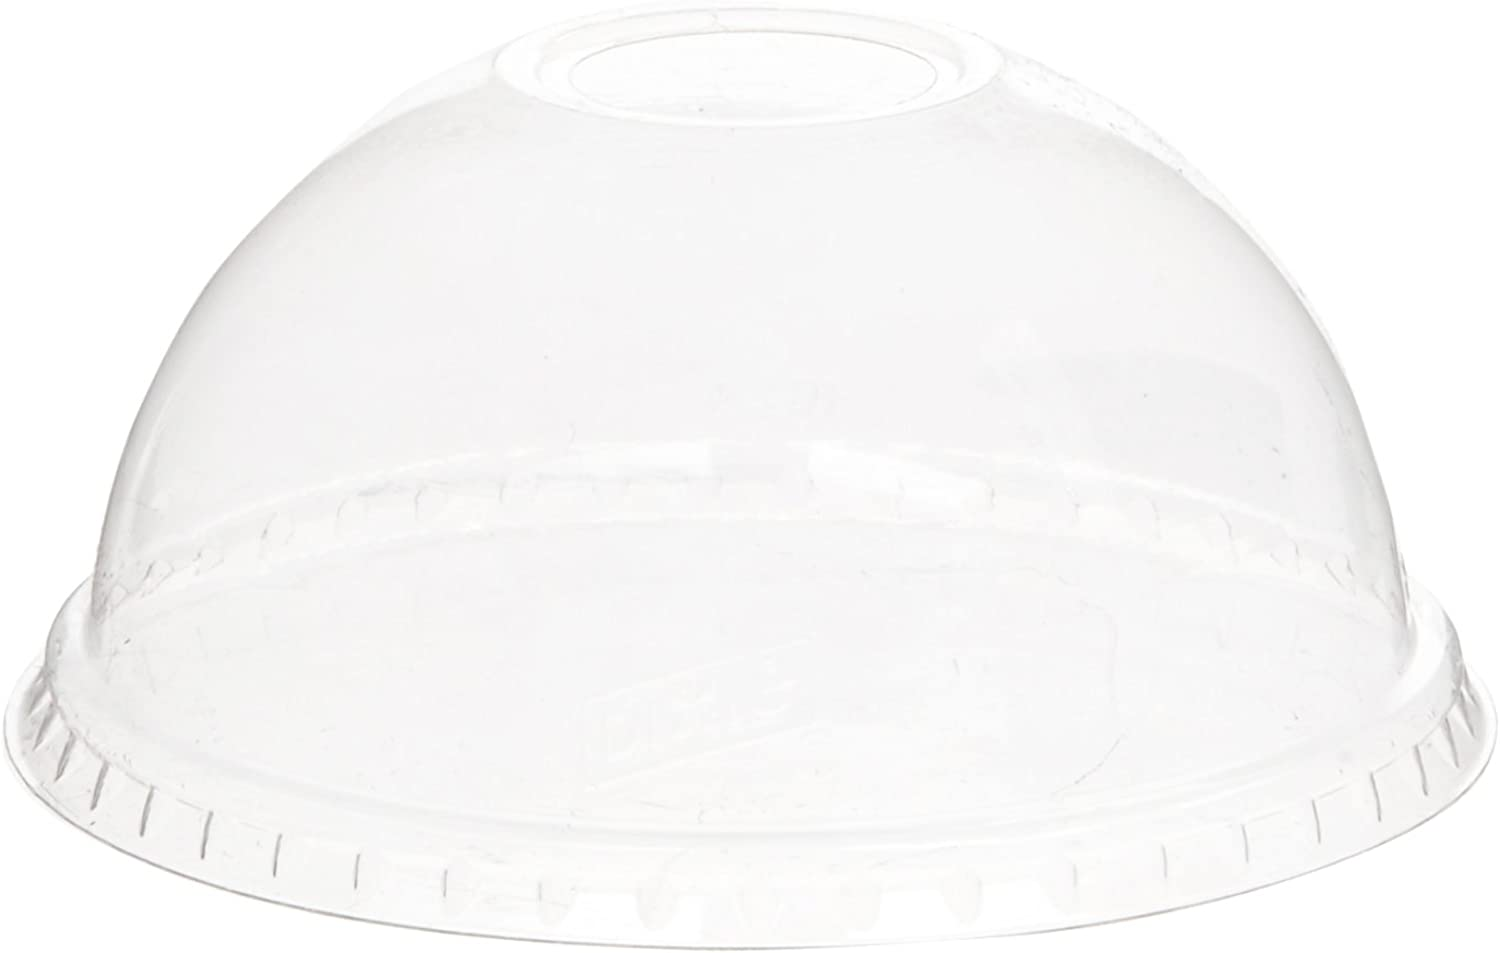 Dixie 16 and 24 oz. Dome Plastic Cold Cup Lid by GP PRO (Georgia-Pacific), Clear,  DL1624,  1,000 Count (50 Lids Per Sleeve, 20 Sleeves Per Case)